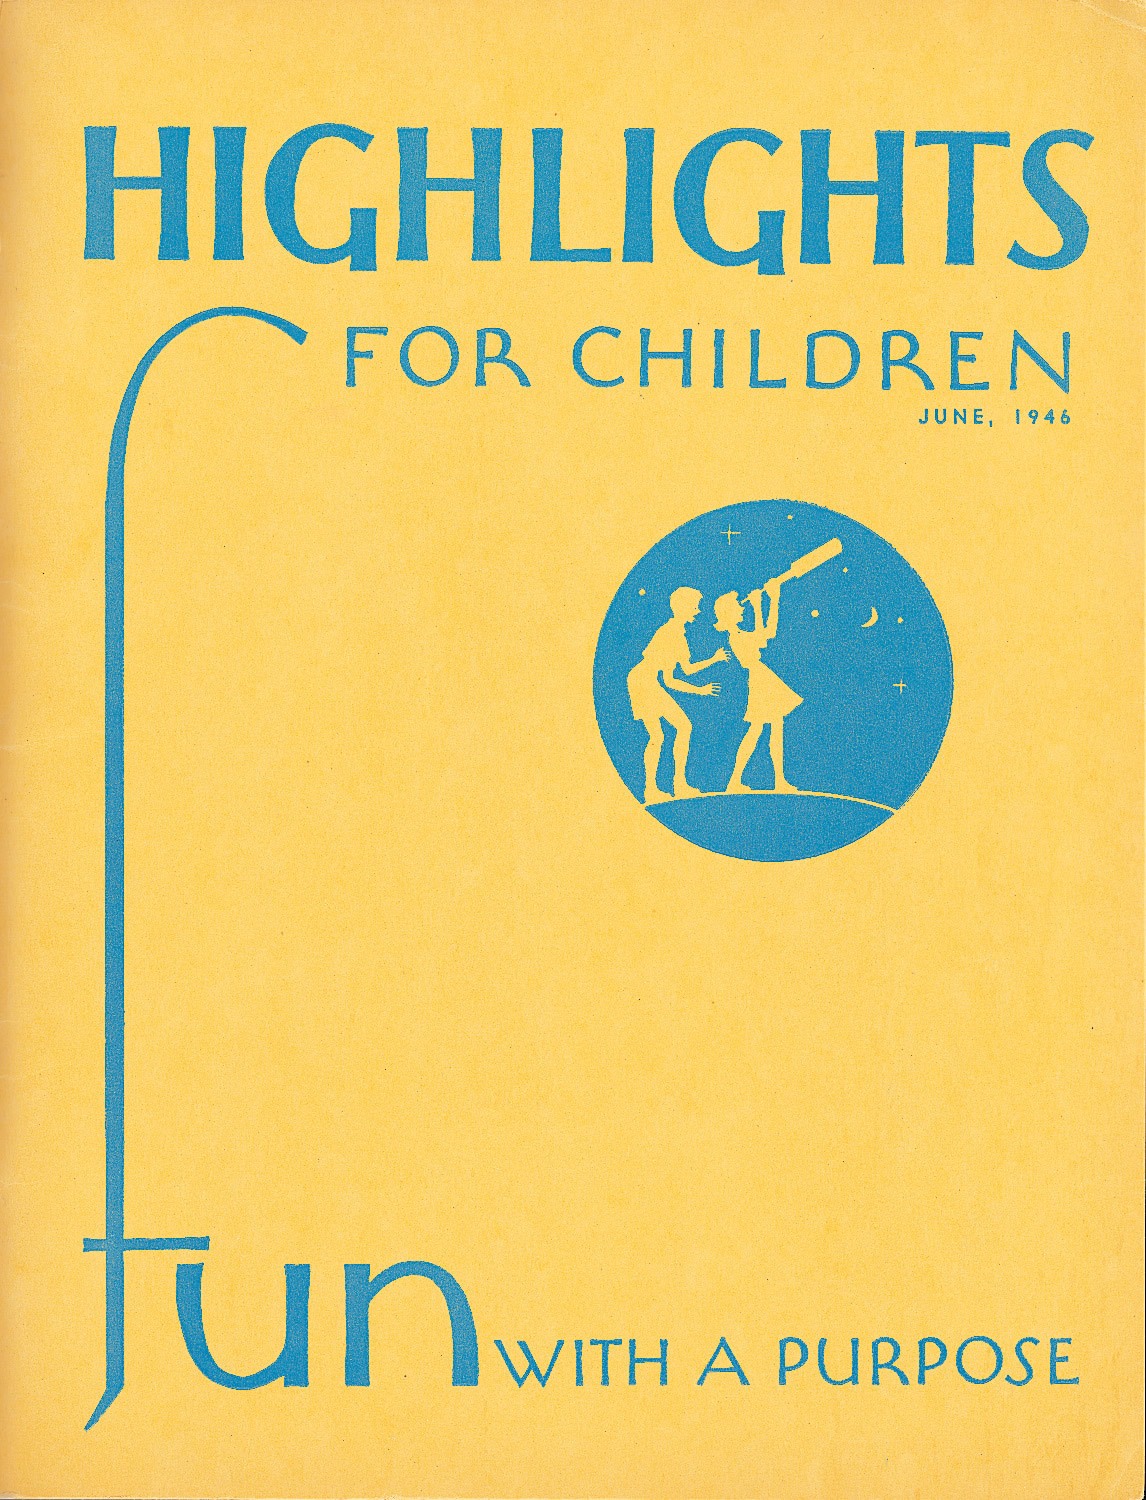 Highlights for Children Inaugural Cover